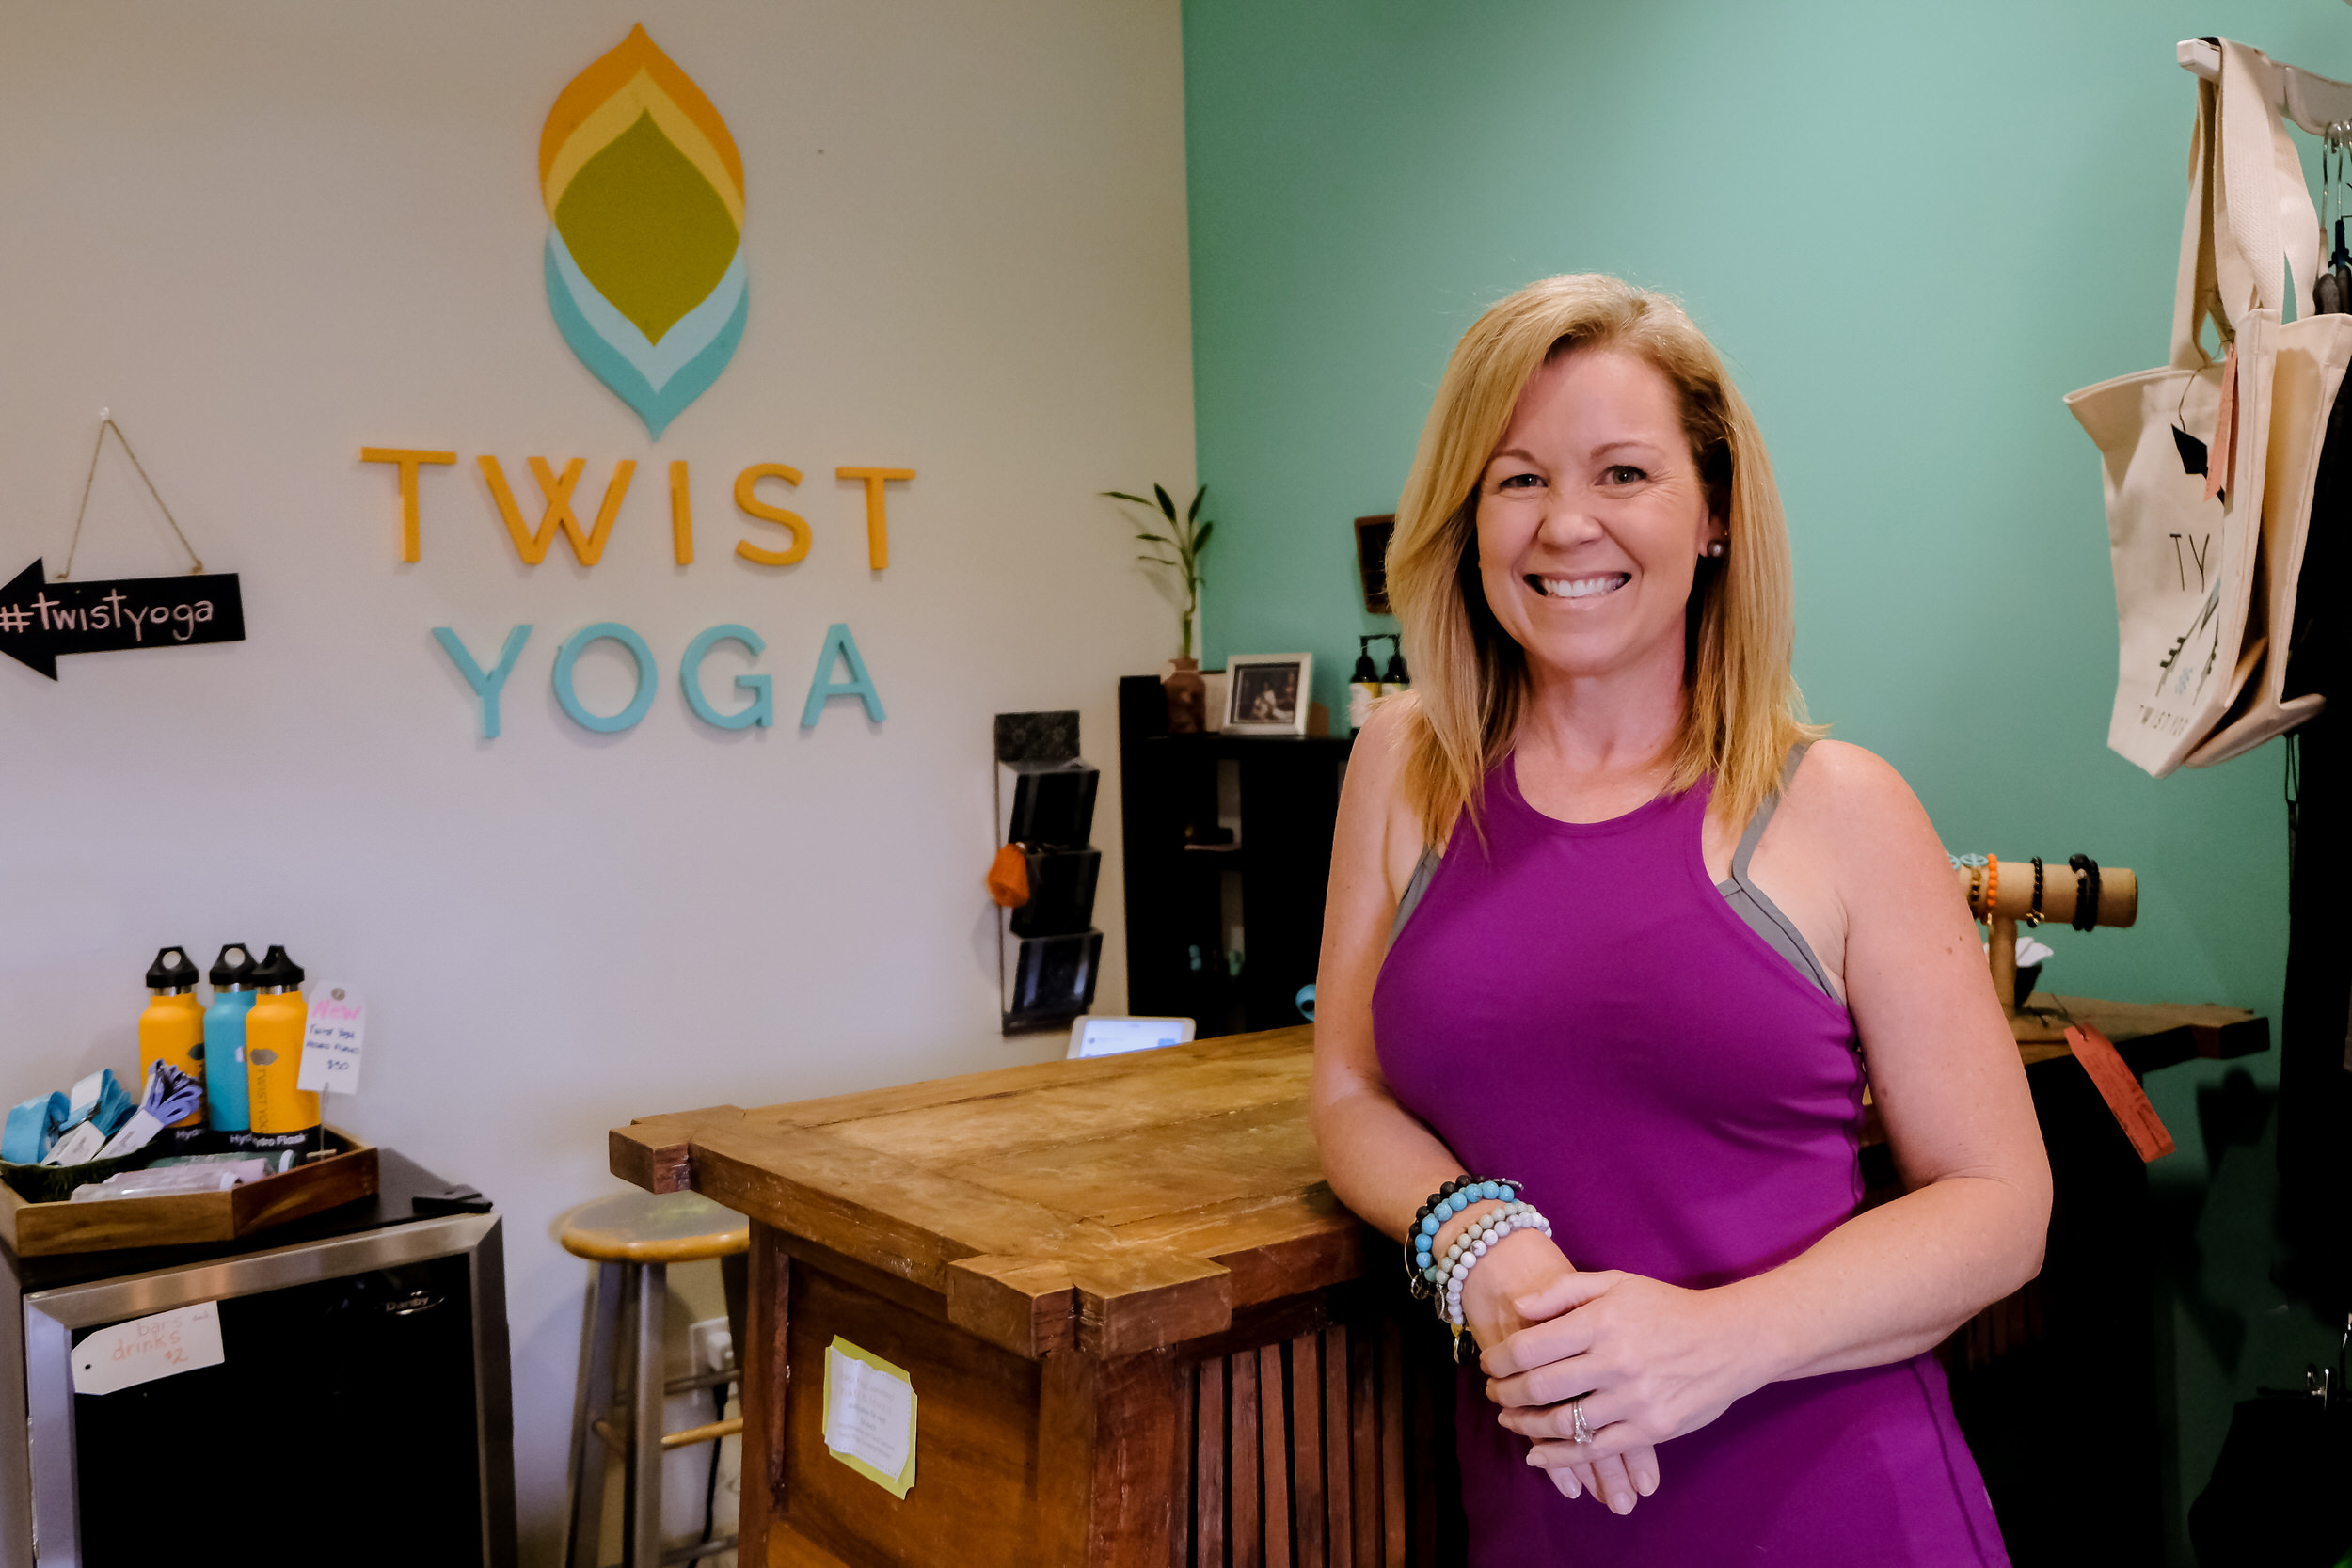 Twist_Yoga_Website_Rebranding_Markerting_Photos016